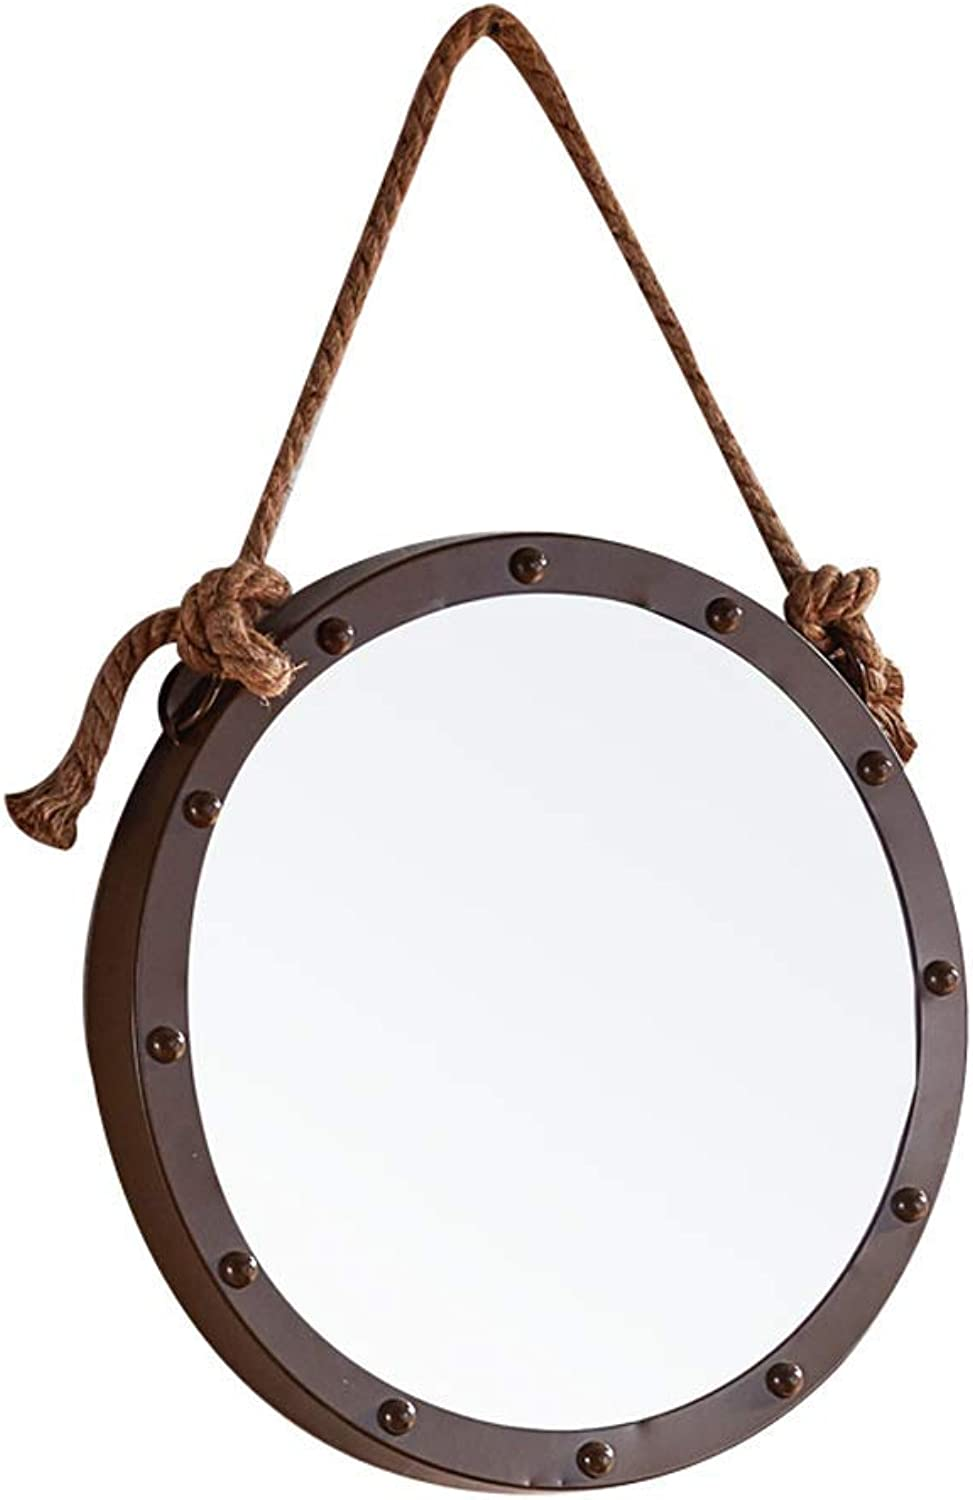 Wall-Mounted Mirror Hemp Rope Makeup Mirror Bathroom Wall Wrought Iron Round Mirror (color   -, Size   -)